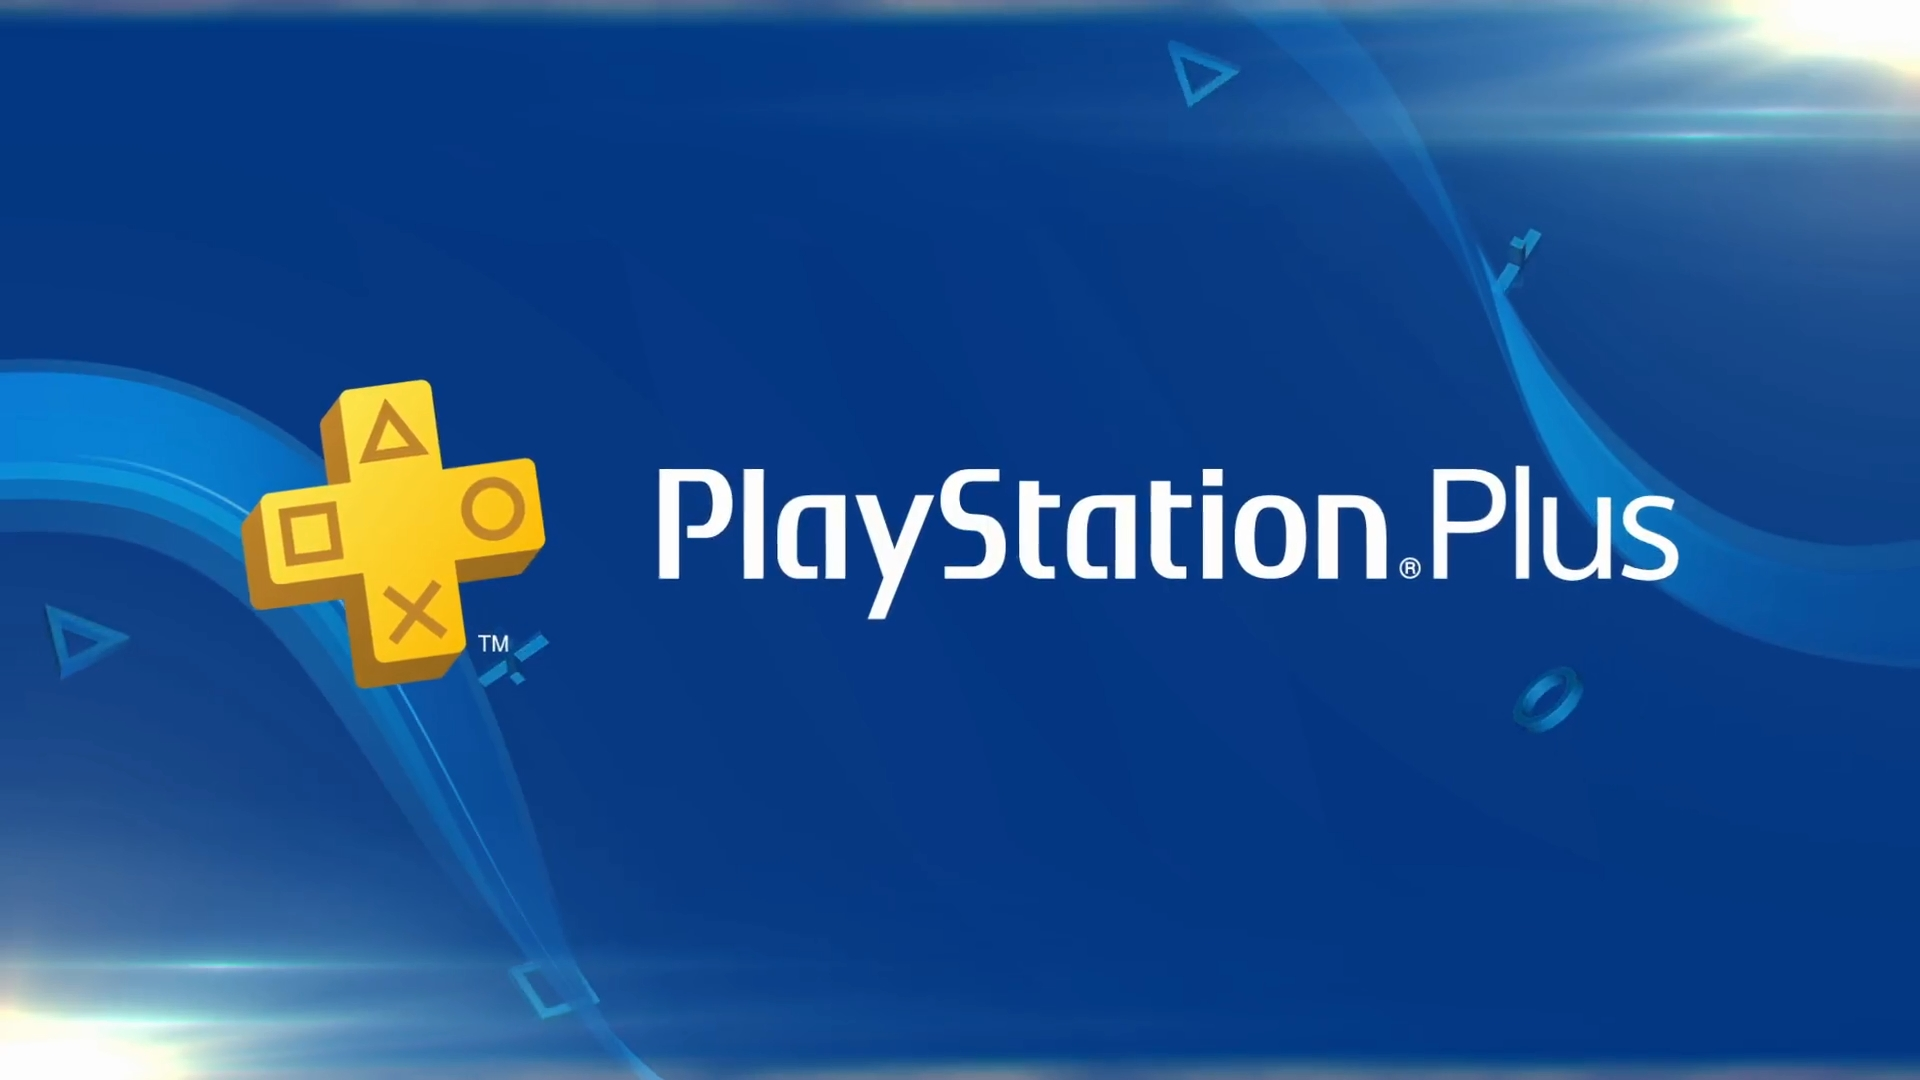 ps-plus-banner-1